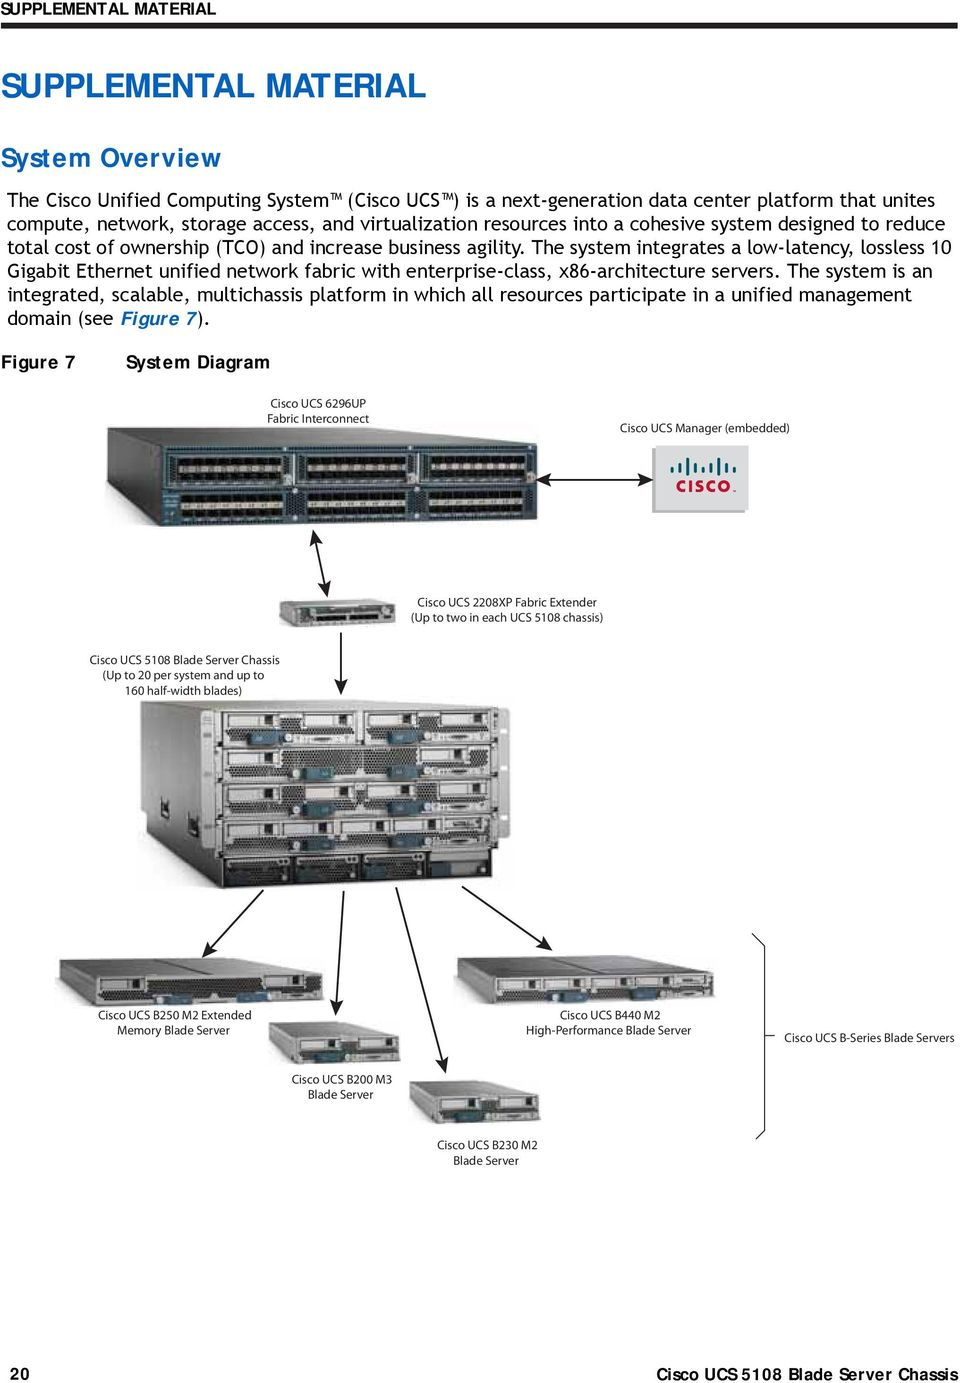 Cisco Ucs 5108 Blade Server Chassis Pdf Brz Fujitsu Wiring Diagram The System Integrates A Low Latency Lossless 10 Gigabit Ethernet Unified Network Fabric With